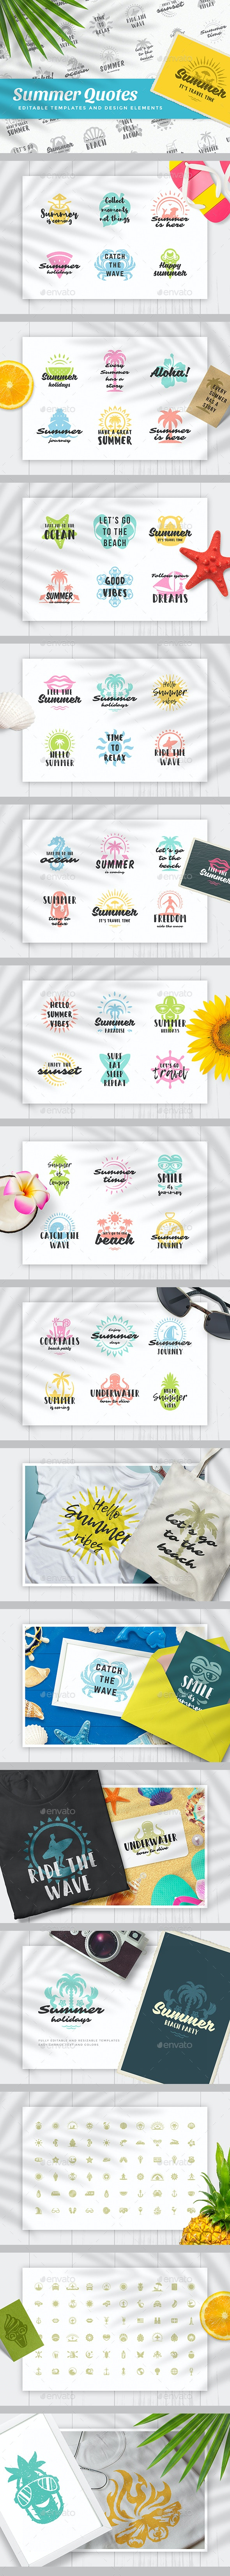 Summer Quotes - Badges & Stickers Web Elements